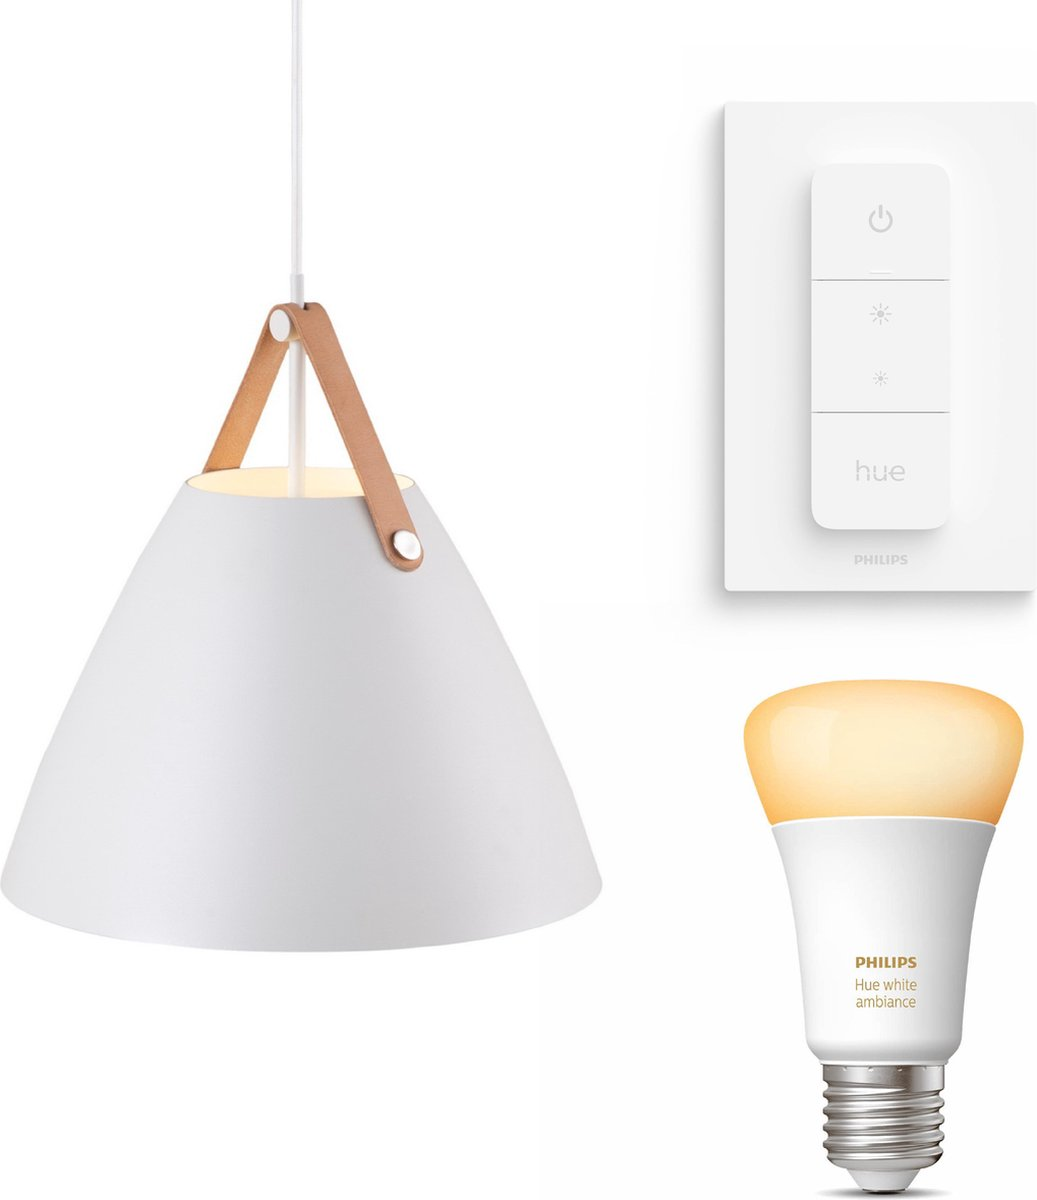 Nordlux Strap 36 hanglamp - LED - wit - 1 lichtpunt - Incl. Philips Hue White Ambiance E27 & dimmer